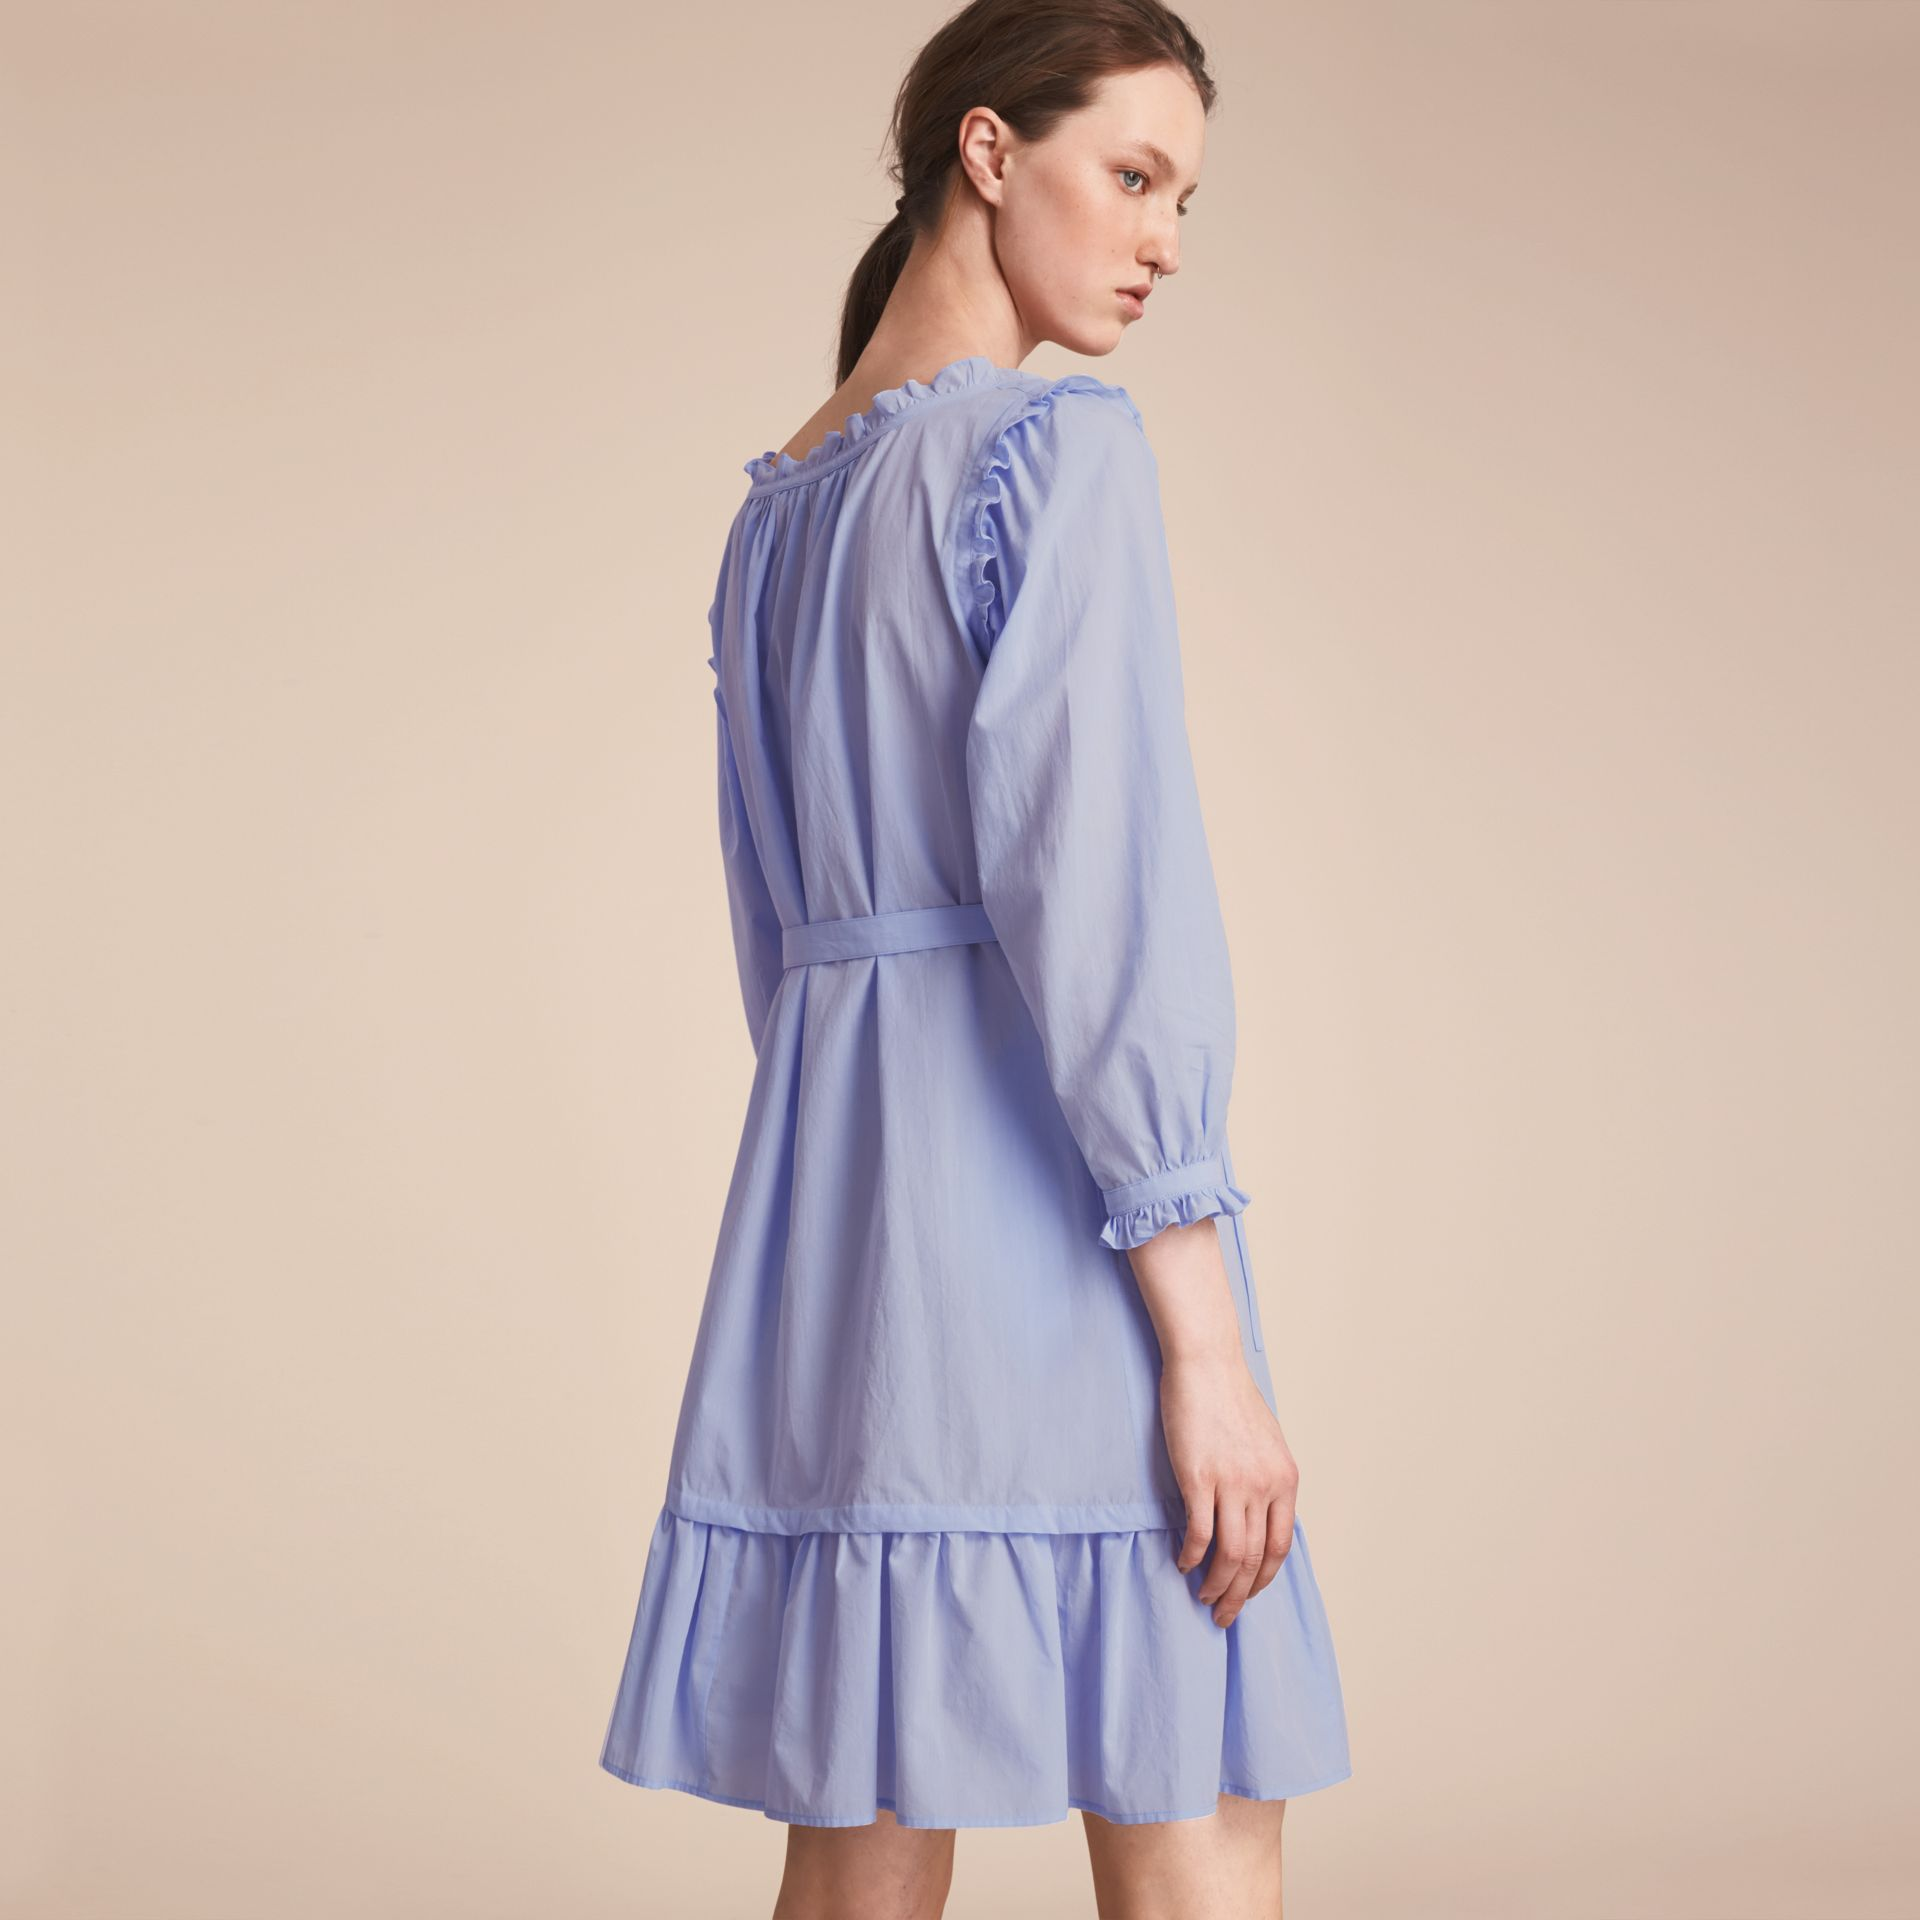 Ruffle and Pintuck Detail Cotton Dress - Women | Burberry - gallery image 3